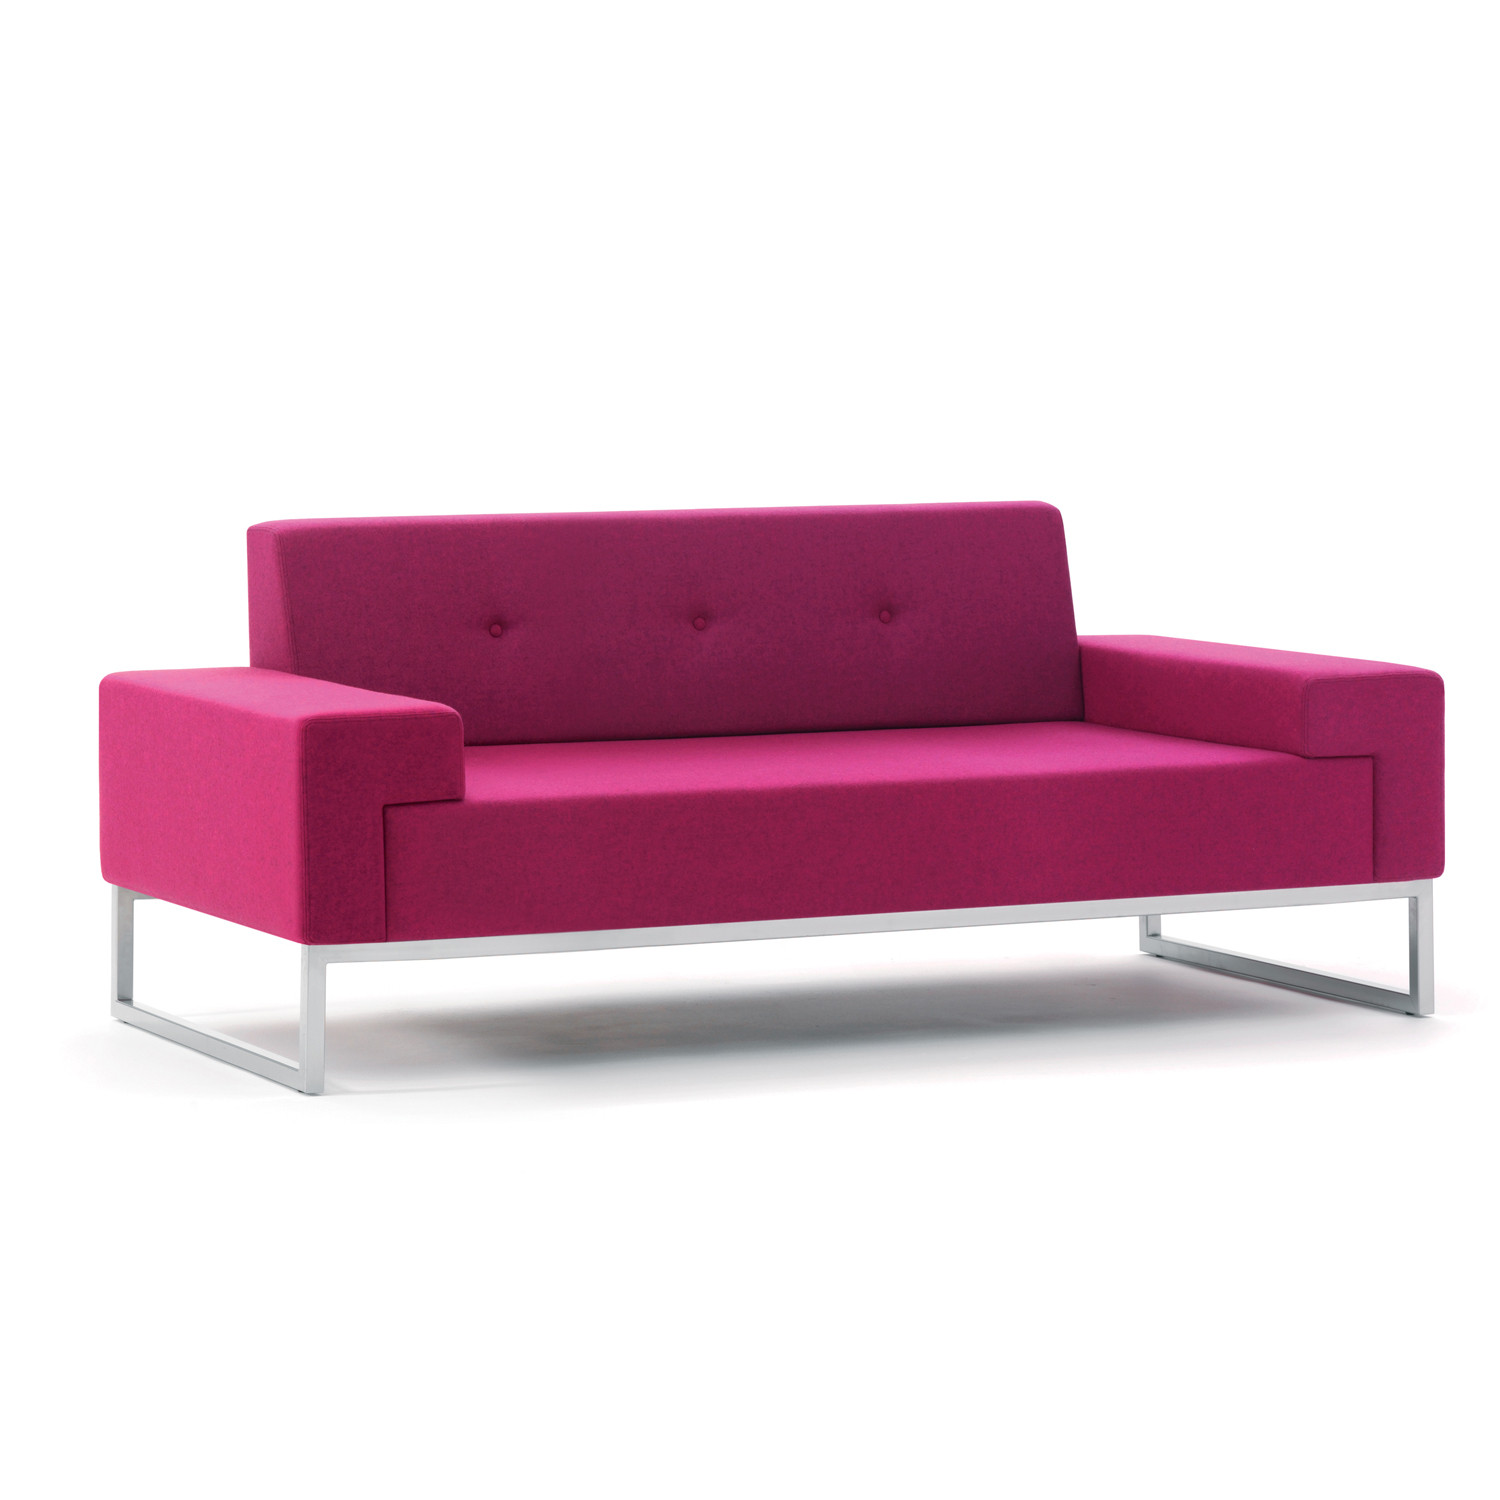 Hub Sofa by Edge